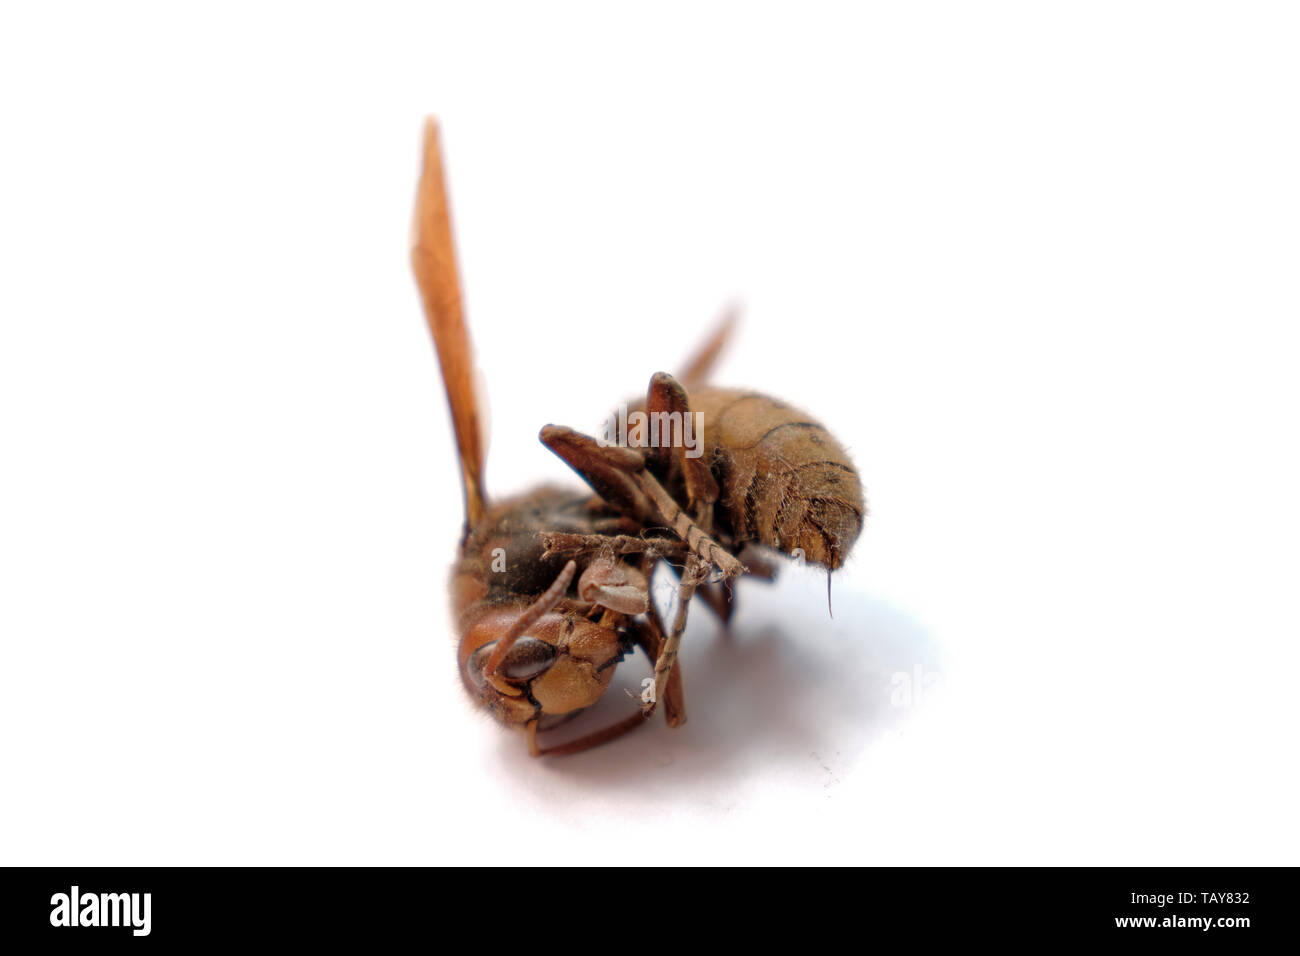 A dried out hornet on a white background. Stinger is visible - Stock Image